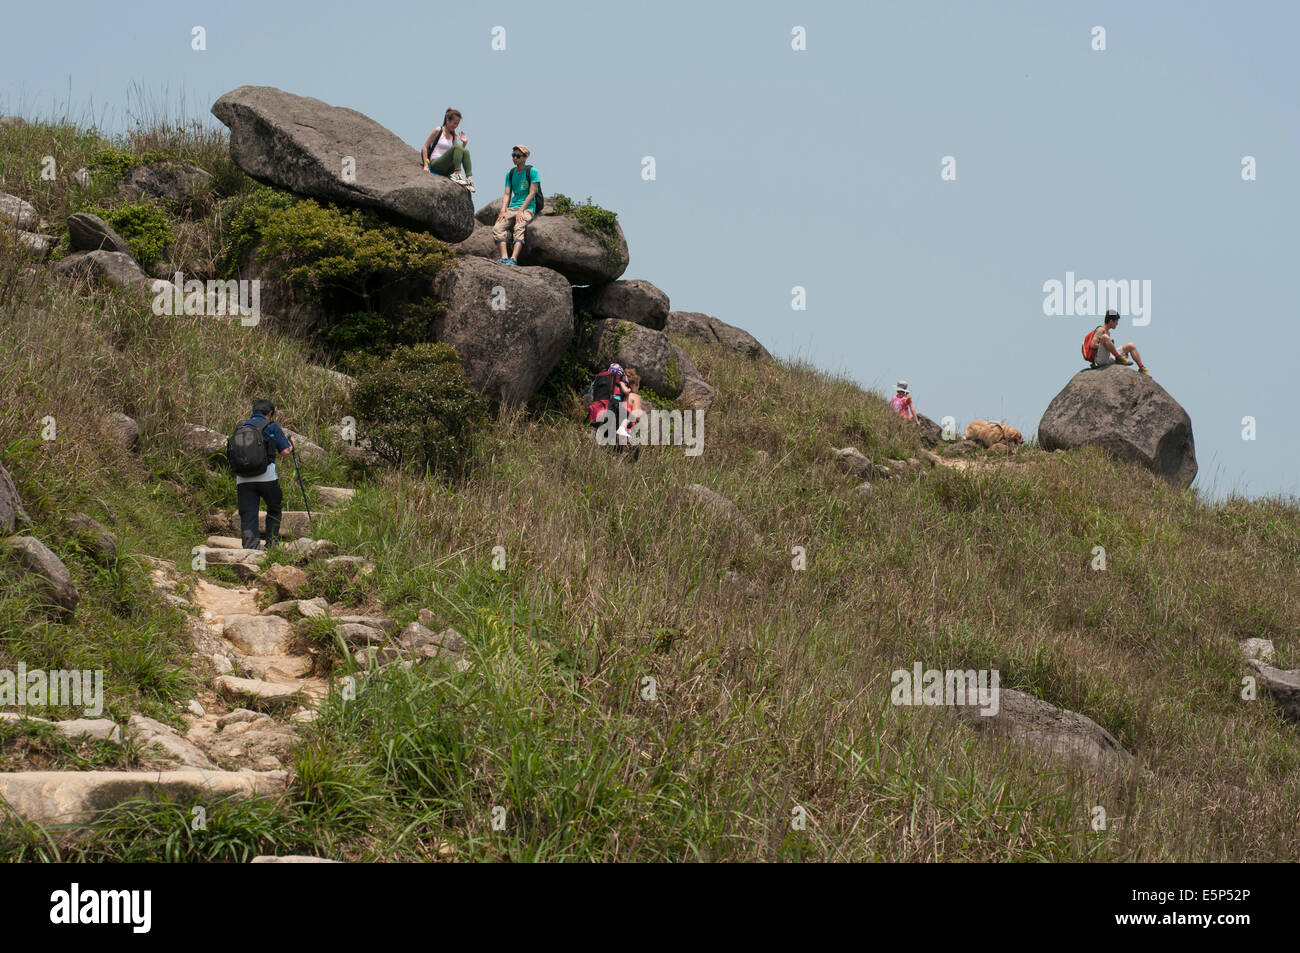 Hikers rest on the trail accessing the top of Sunset Peak Tai Tung Shan on Lantau Island Hong Kong, China. - Stock Image